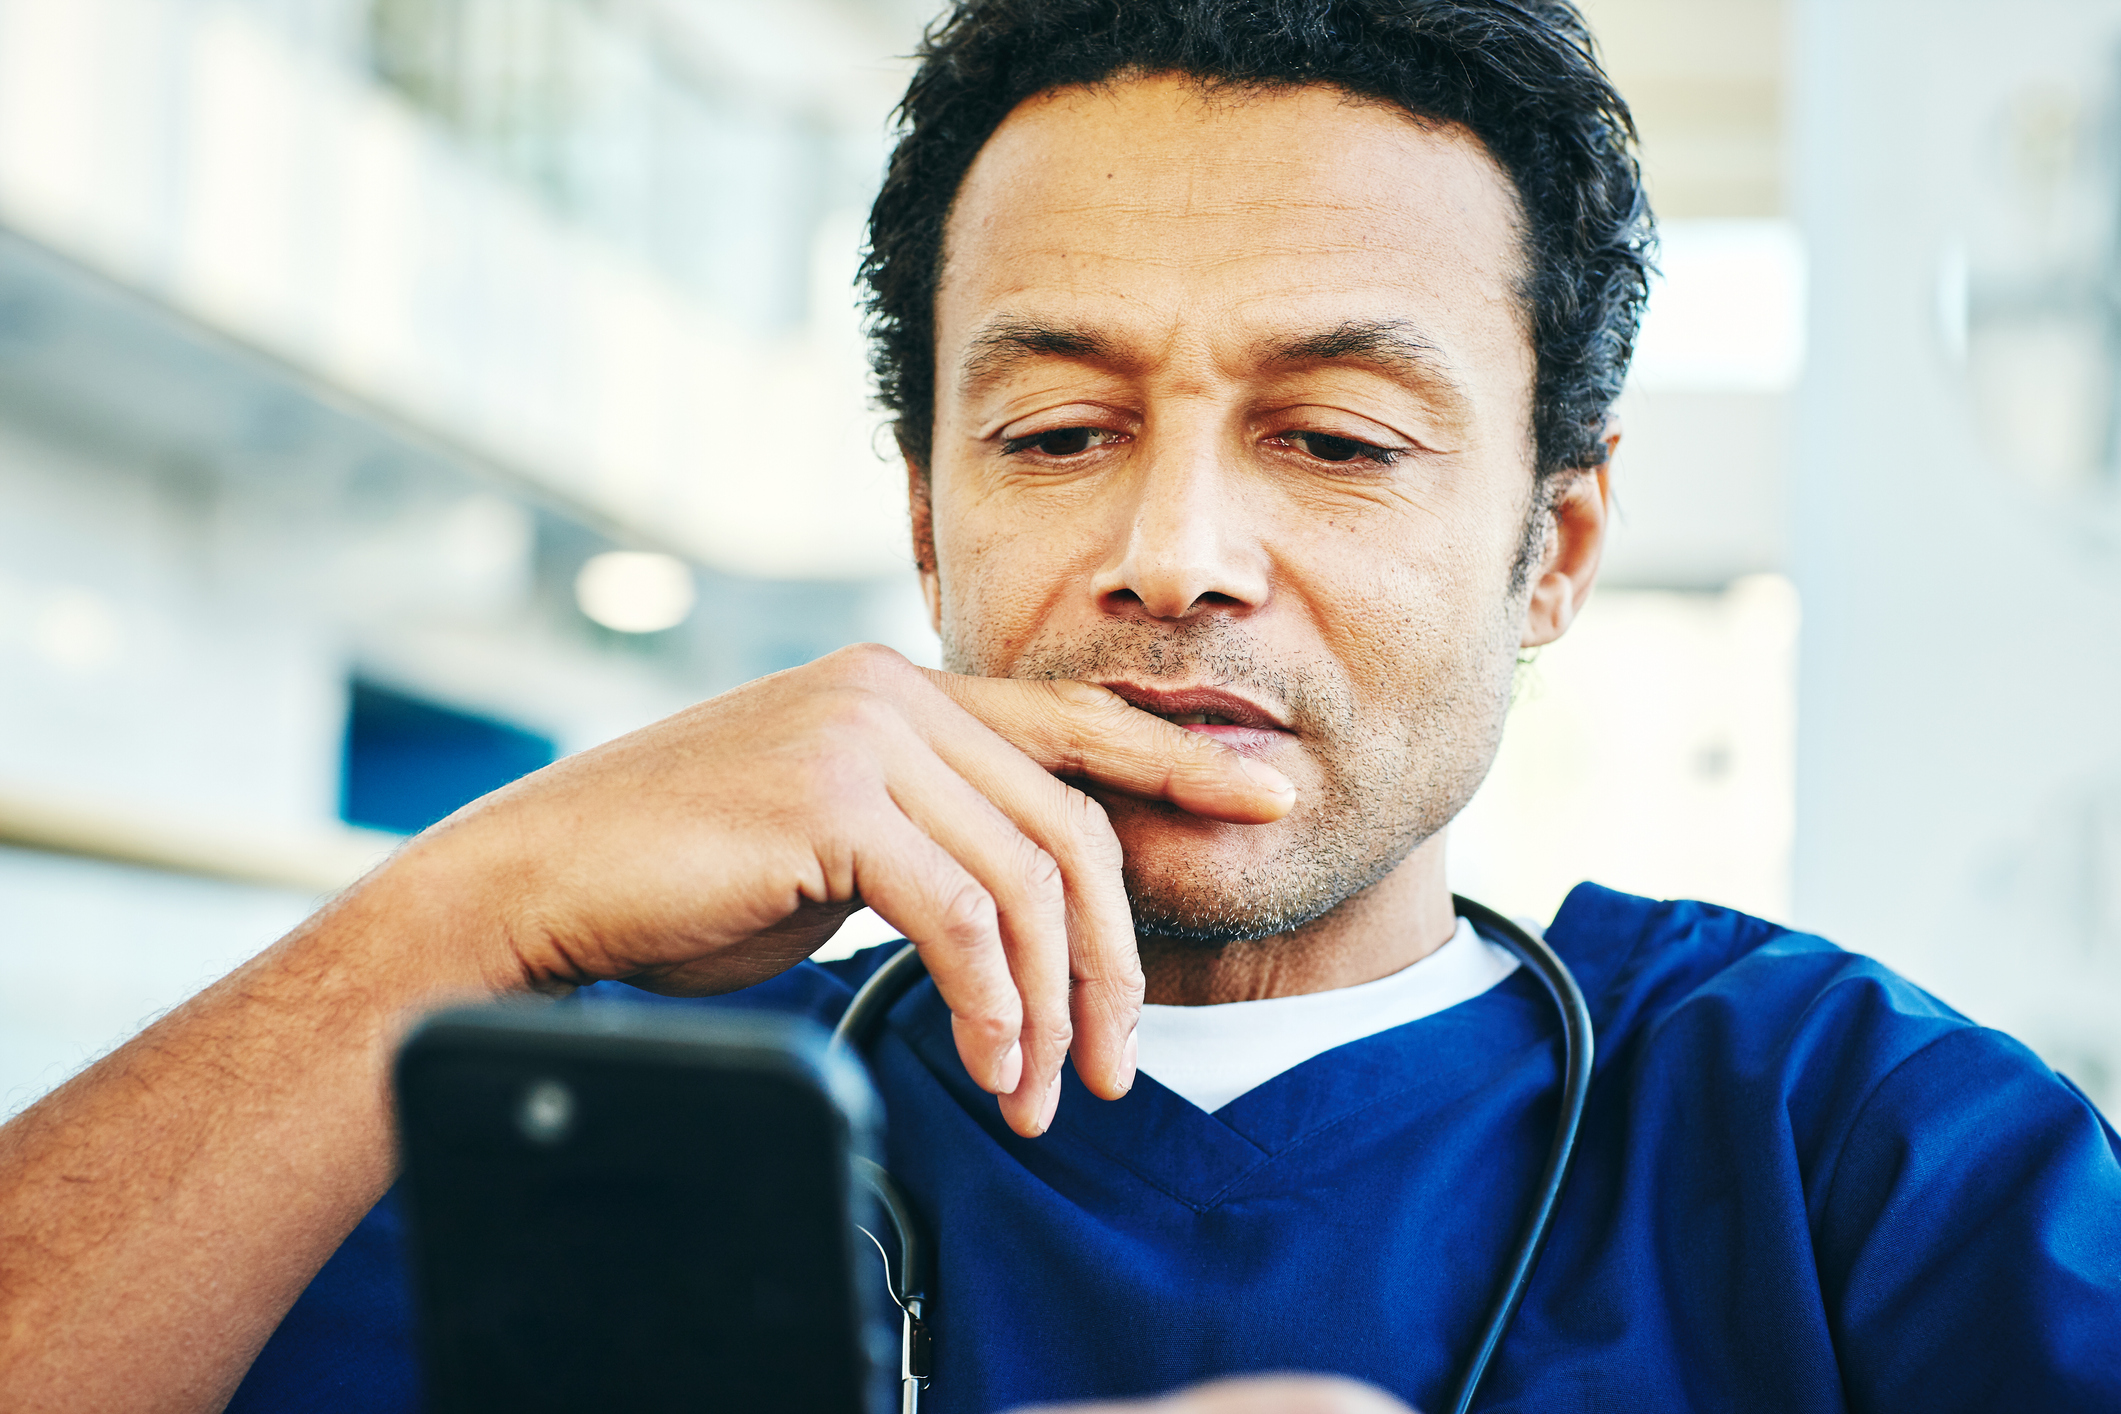 Male physician looking concerned at his smartphone